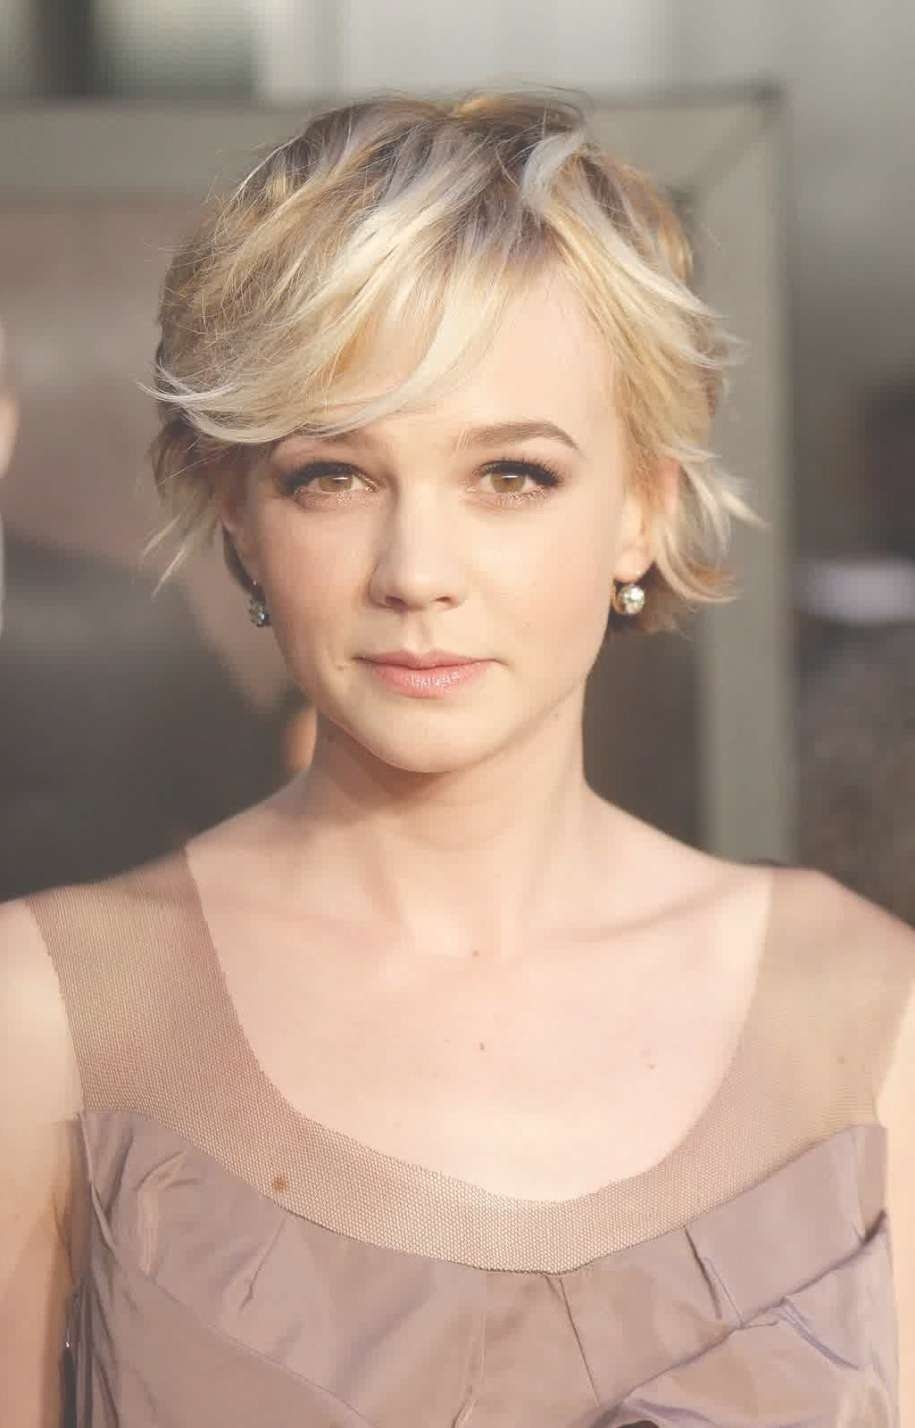 Celebrity Hairstyles: Carey Mulligan Pixie Cut Trend Hairstyles Inside Latest Actresses With Pixie Hairstyles (View 9 of 15)